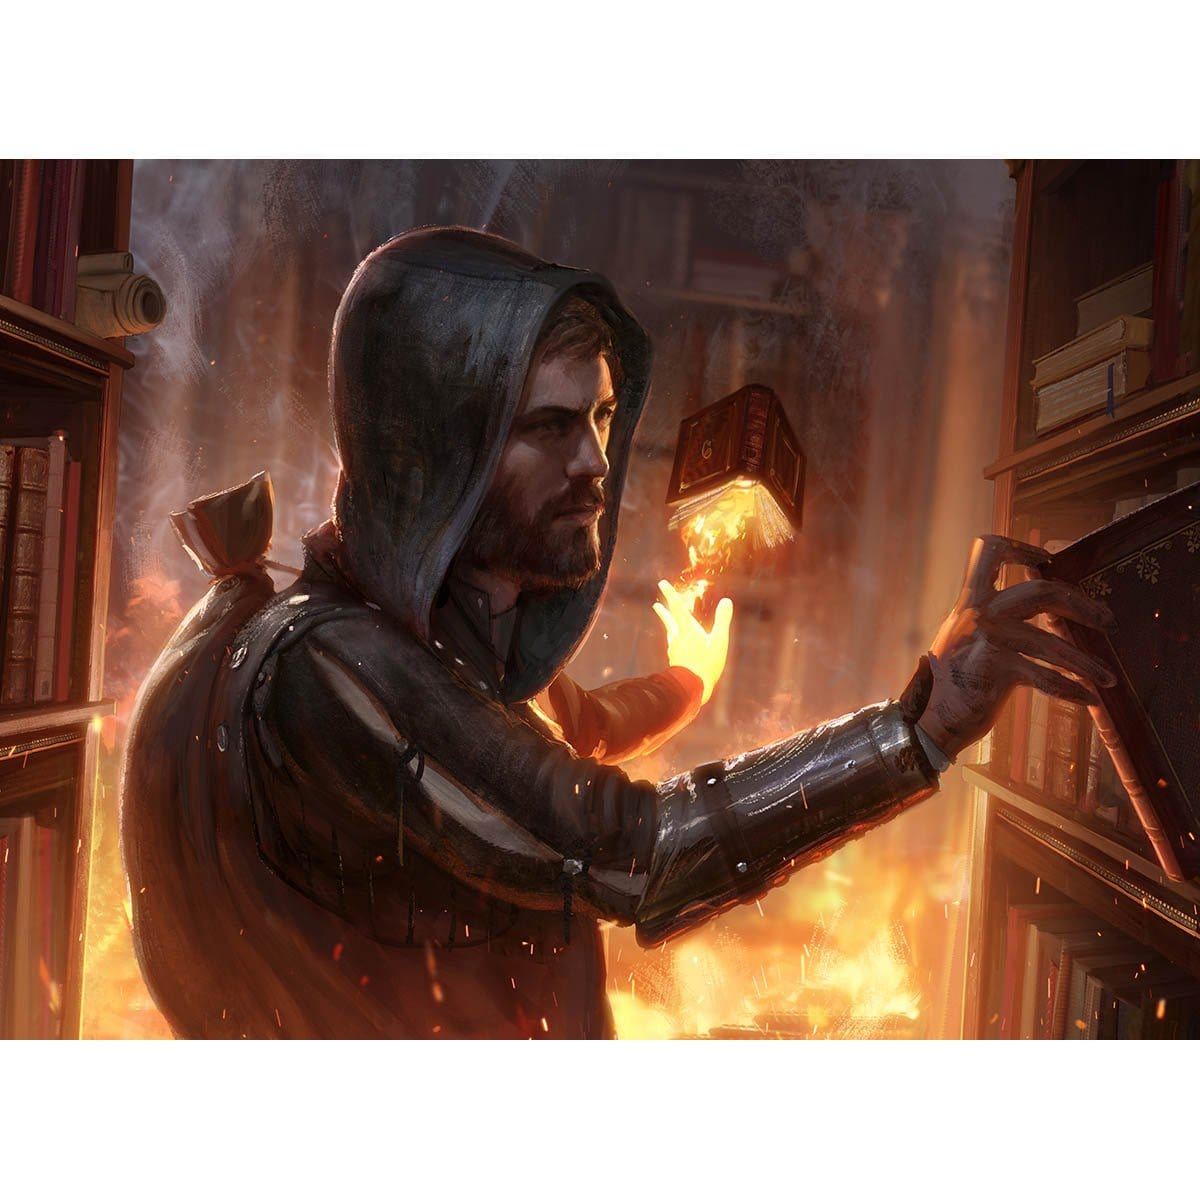 Dismissive Pyromancer Print - Print - Original Magic Art - Accessories for Magic the Gathering and other card games